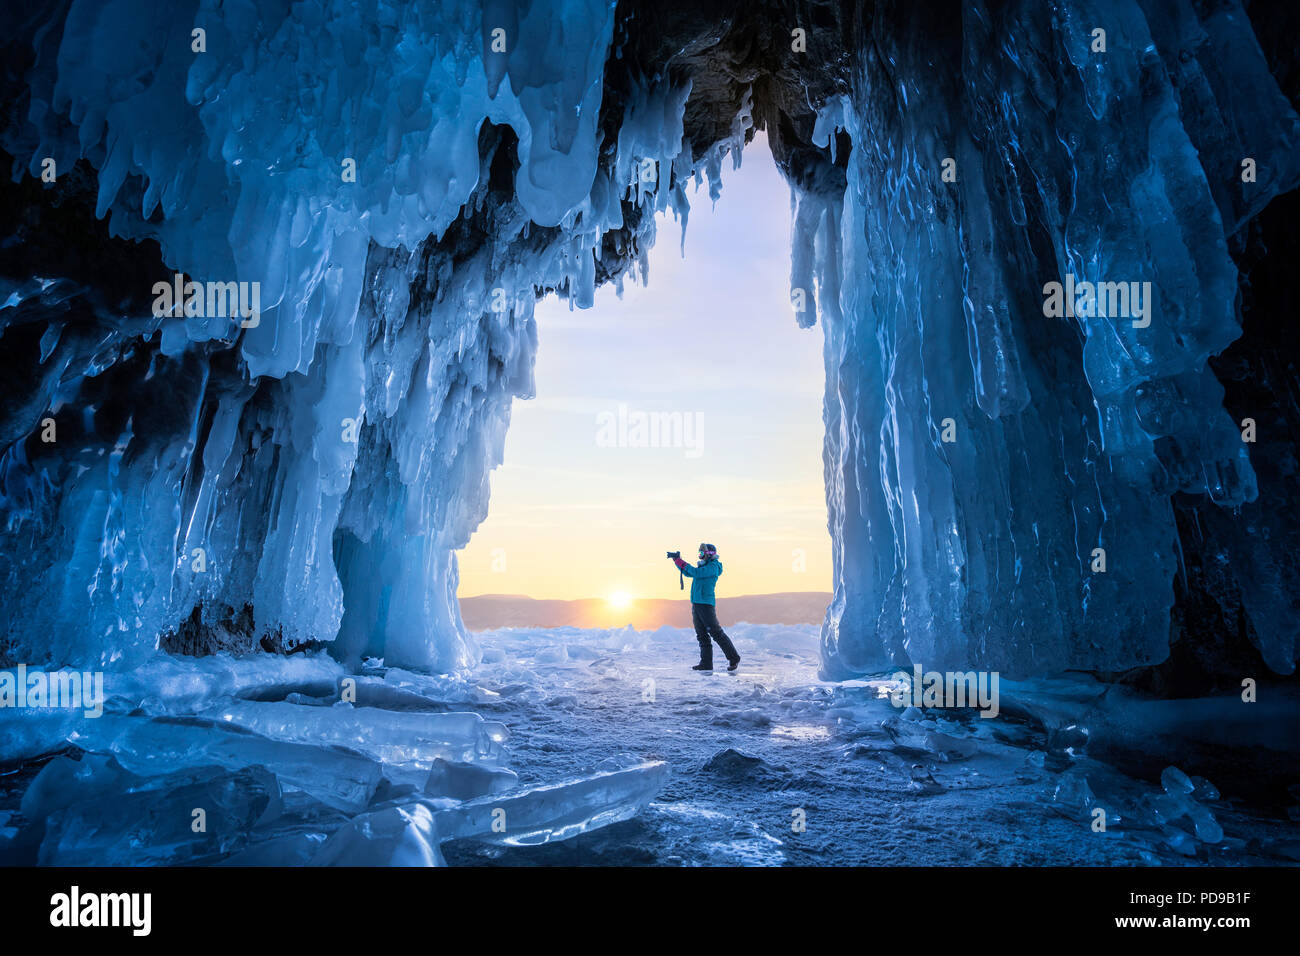 Unknown tourist in front of ice cave on Olkhon island at Baikal lake in Siberia during winter. - Stock Image